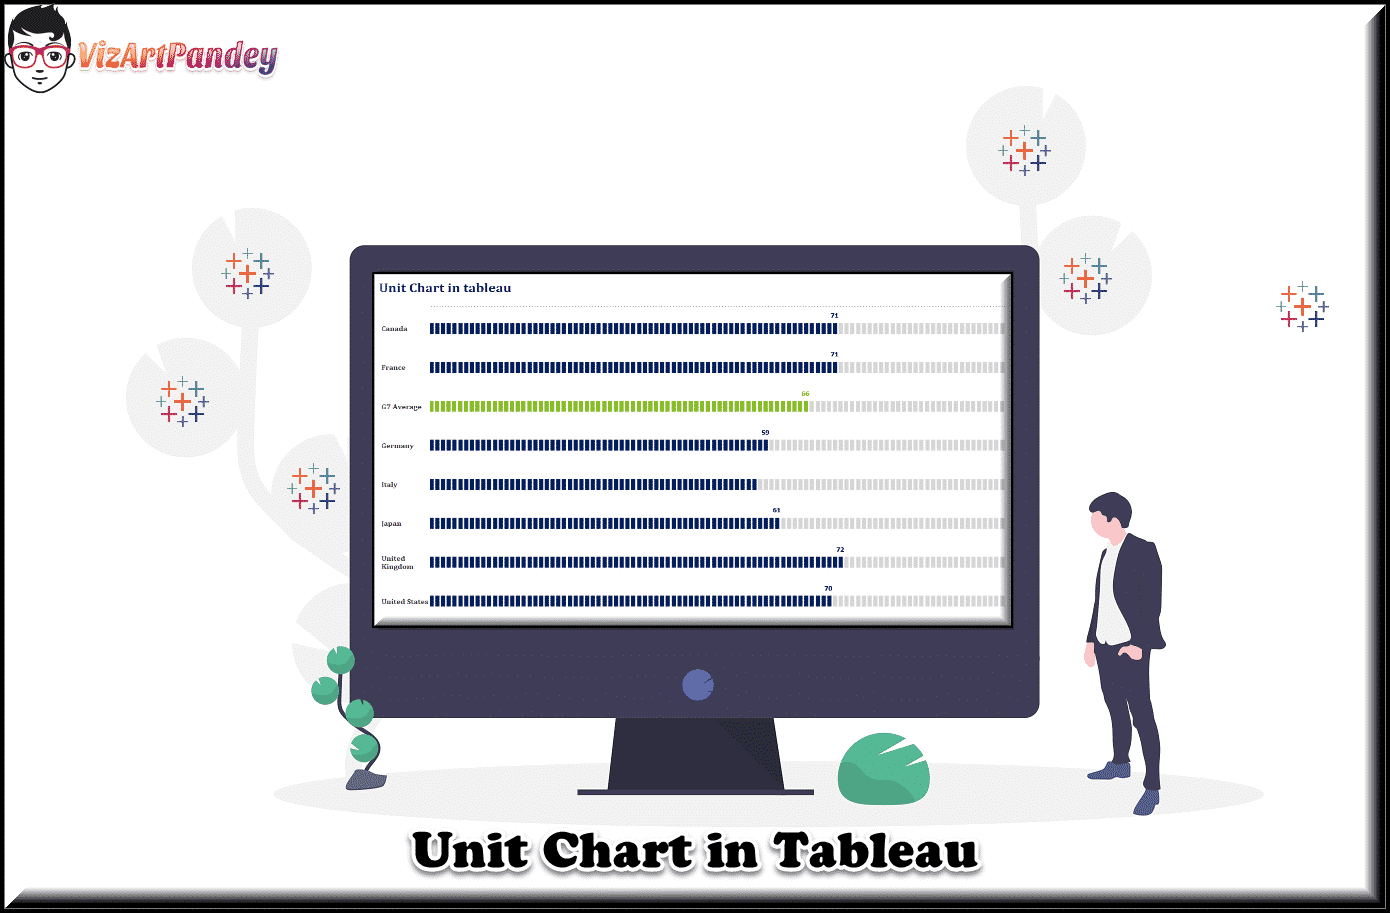 How to Build a Unit Chart in Tableau | Vizartpandey